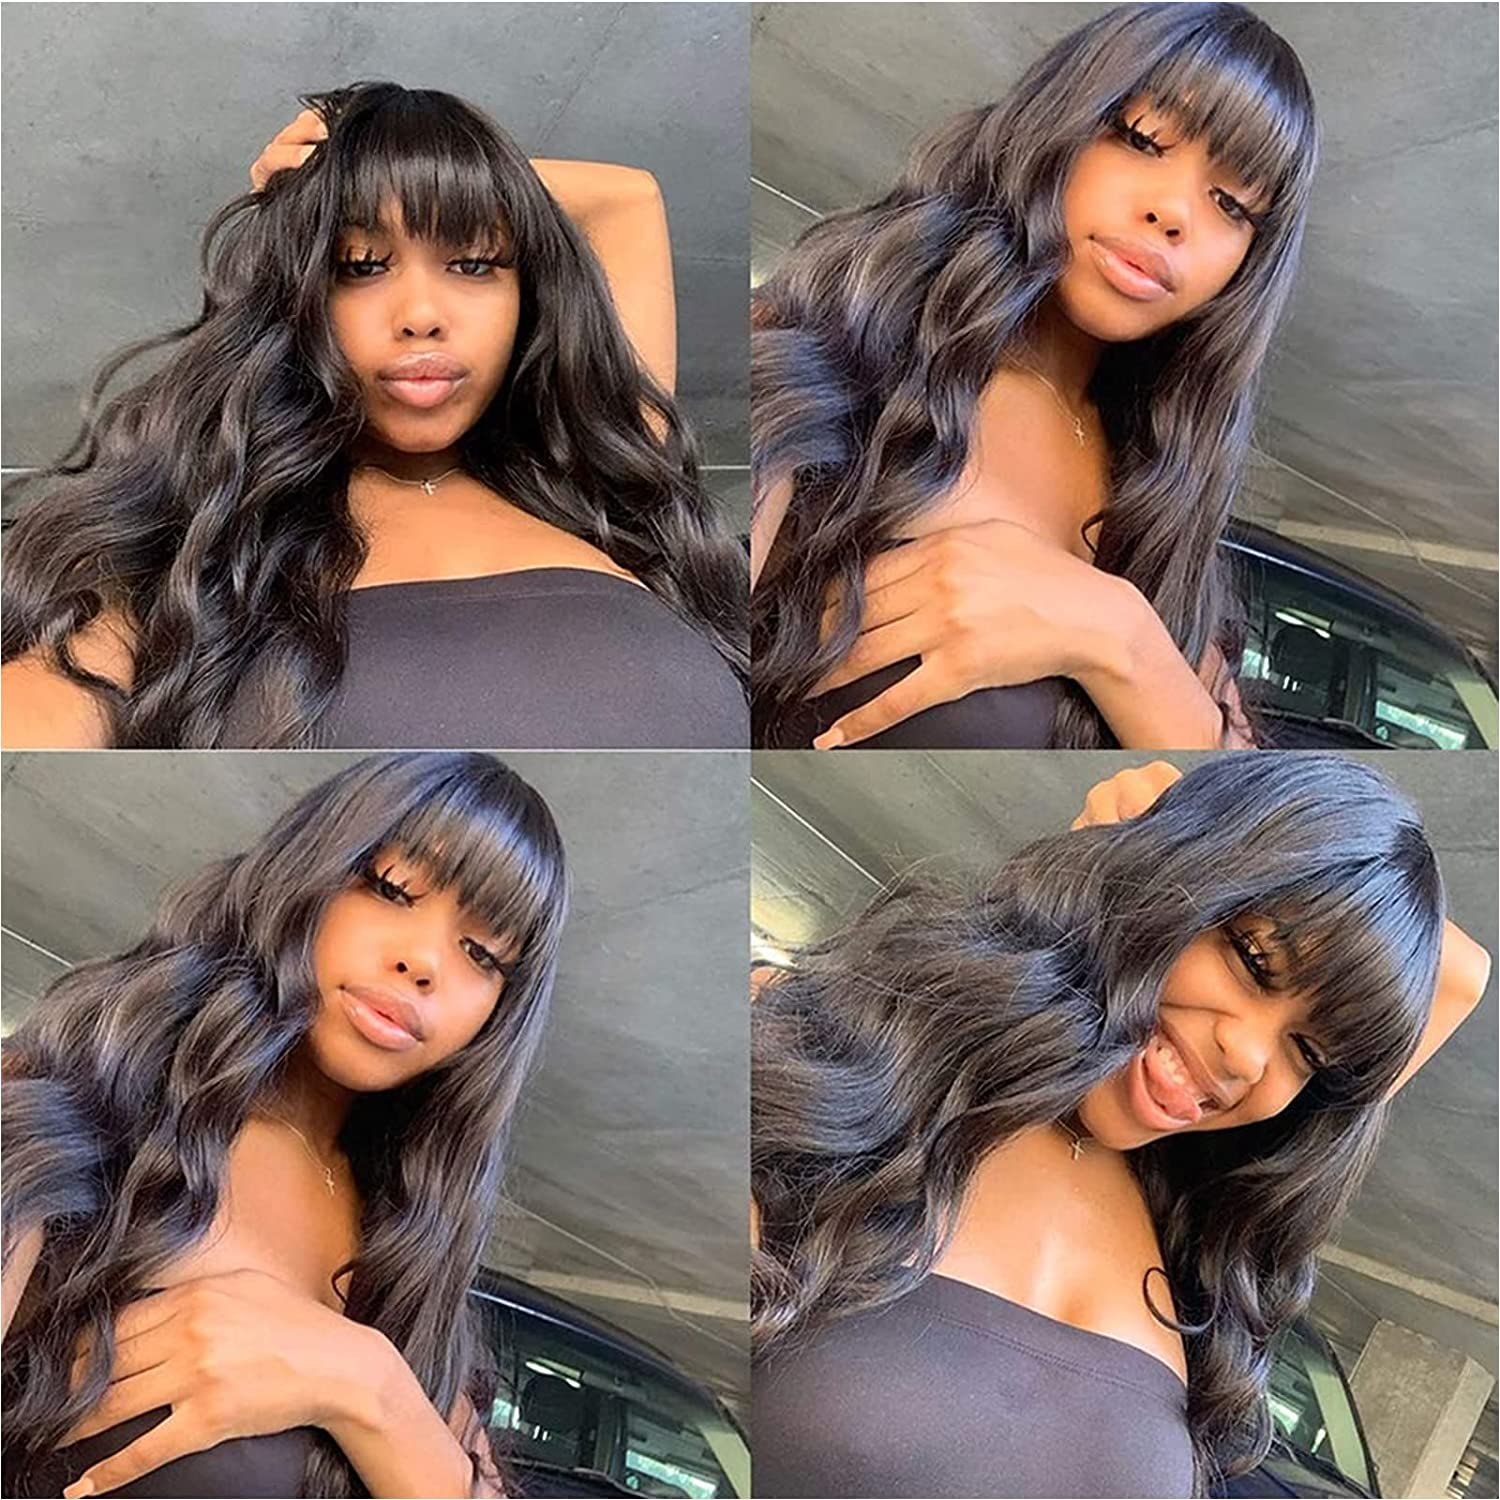 Limited time sale BINF Hair 16 inch 100% Human Wave Bangs Glue Wigs With Body Be super welcome